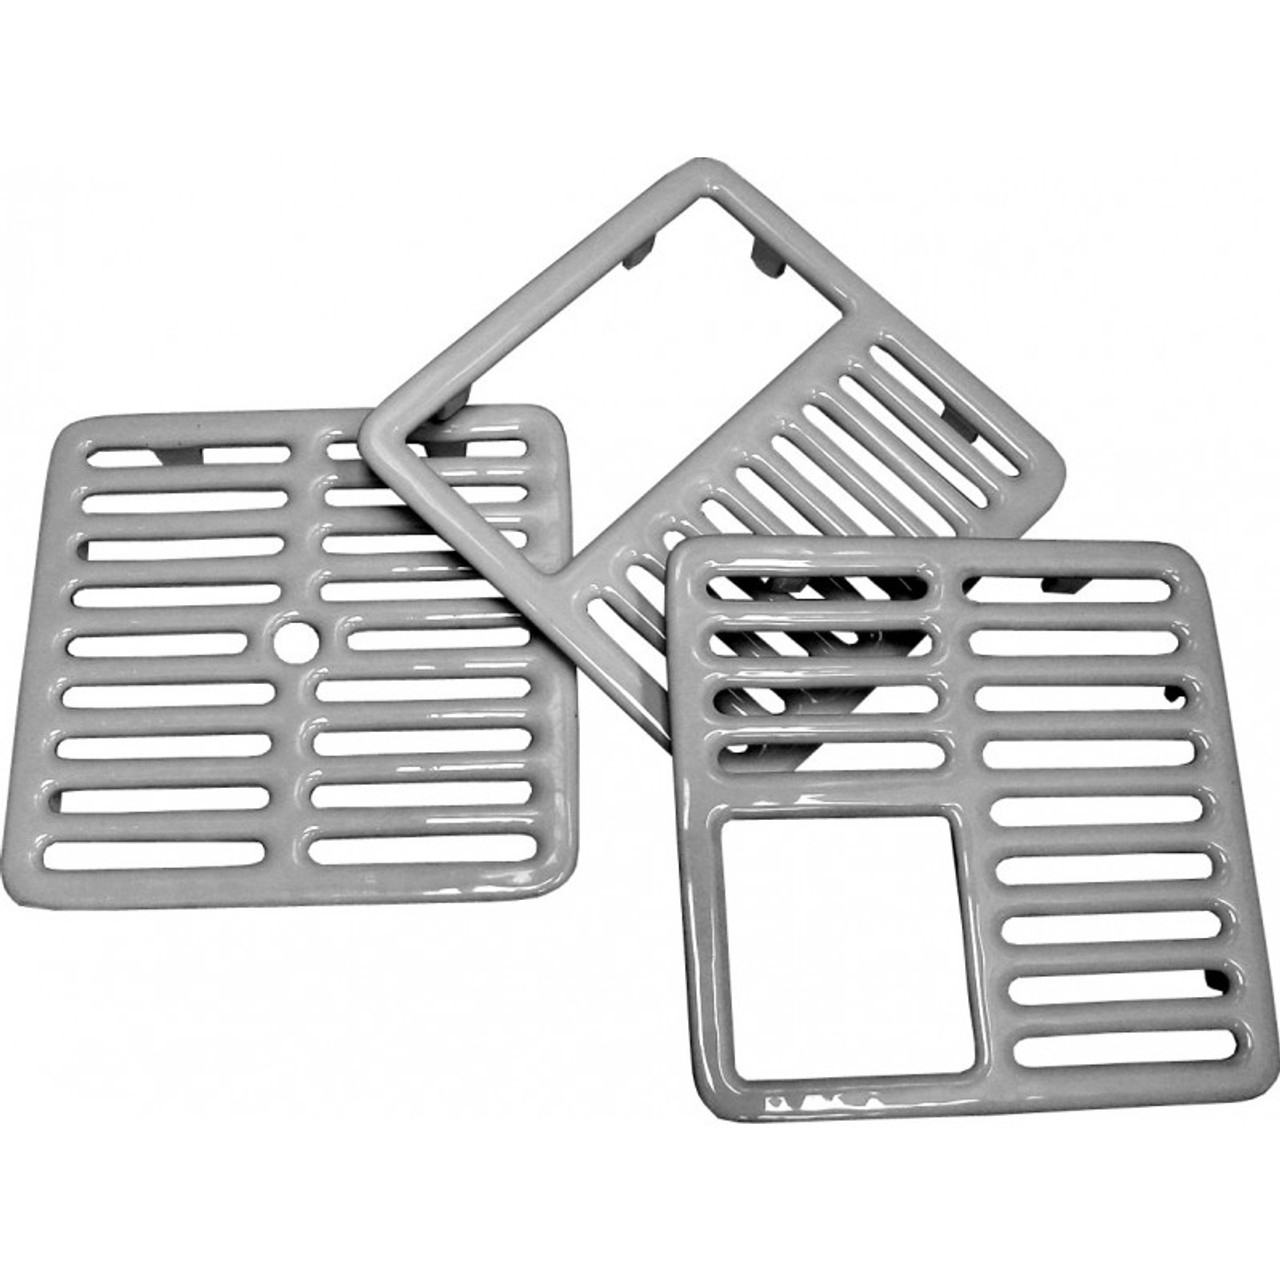 "Floor Sink Grate - Cast iron porcelain with ceramic surface 9-3/8"" fits most 12"" x 12"" floor sinks"